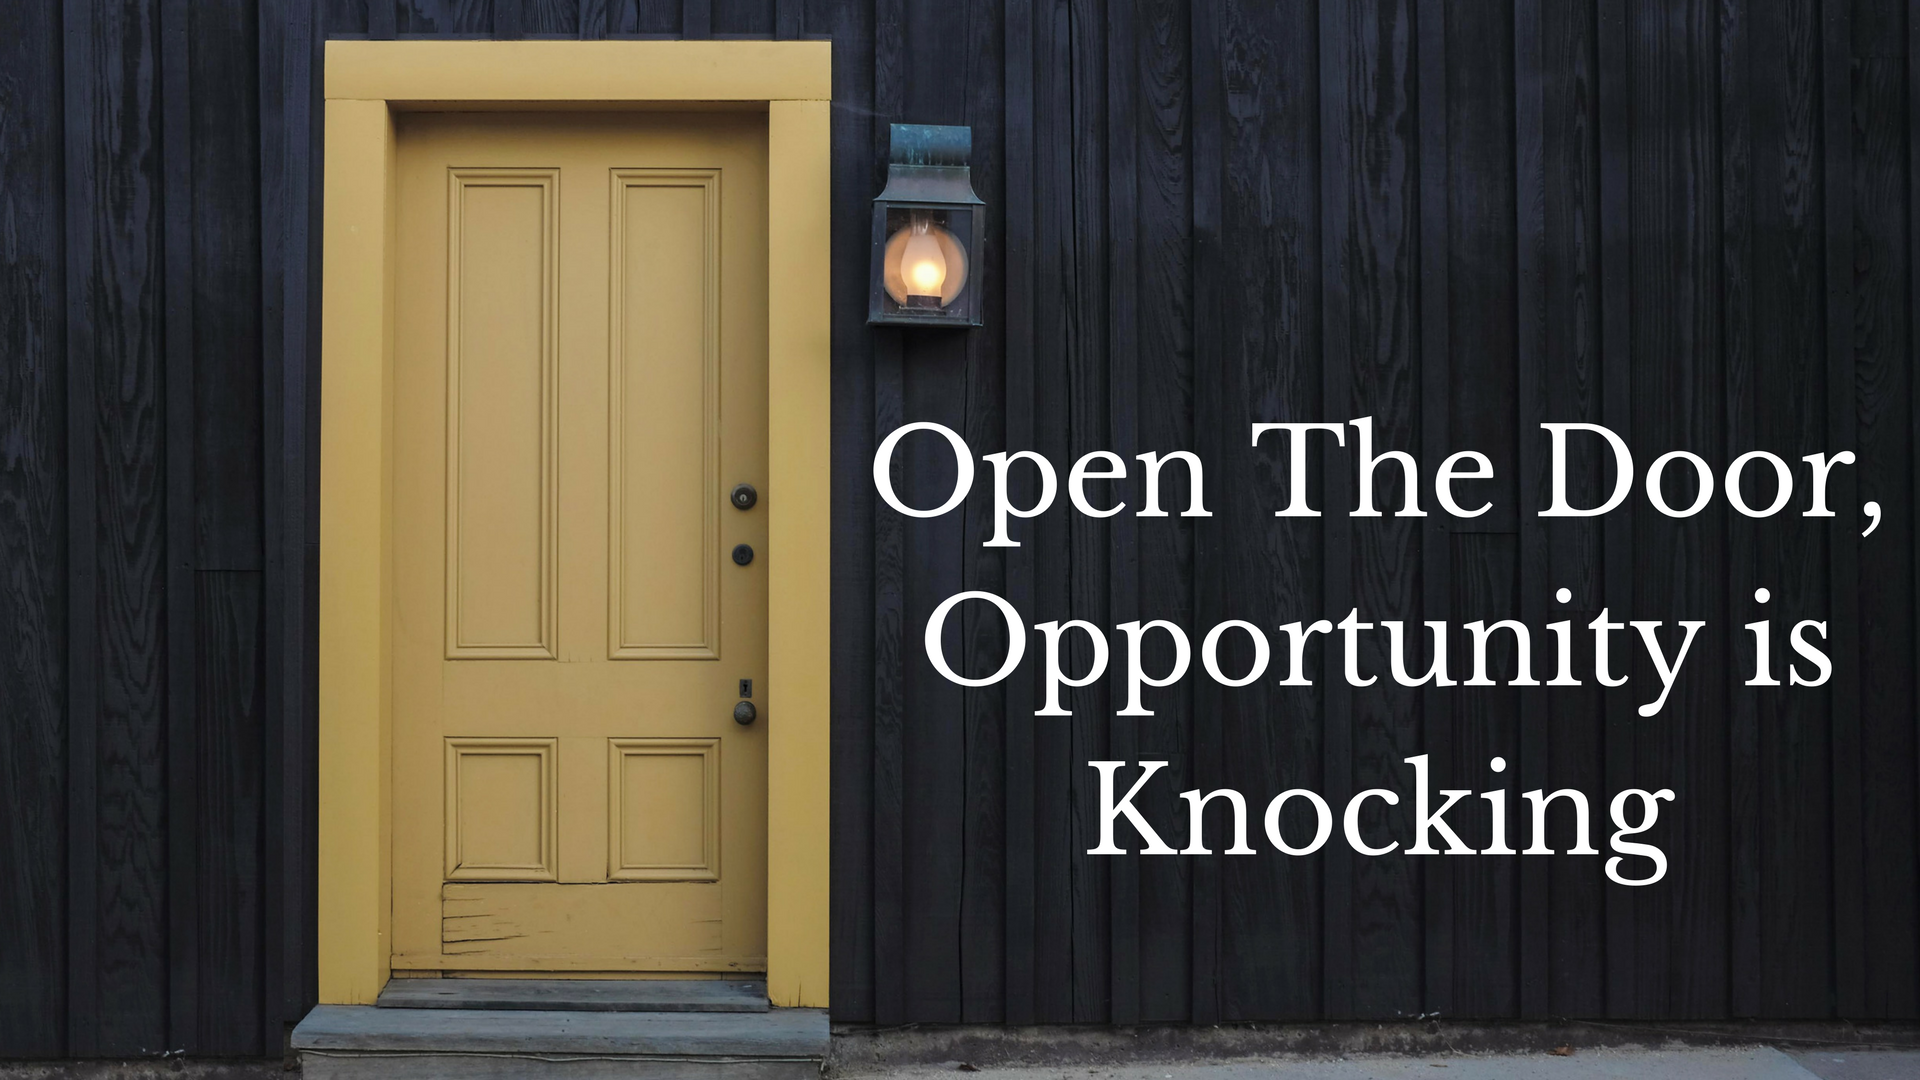 Open The Door, Opportunity is Knocking - Ben Gothard